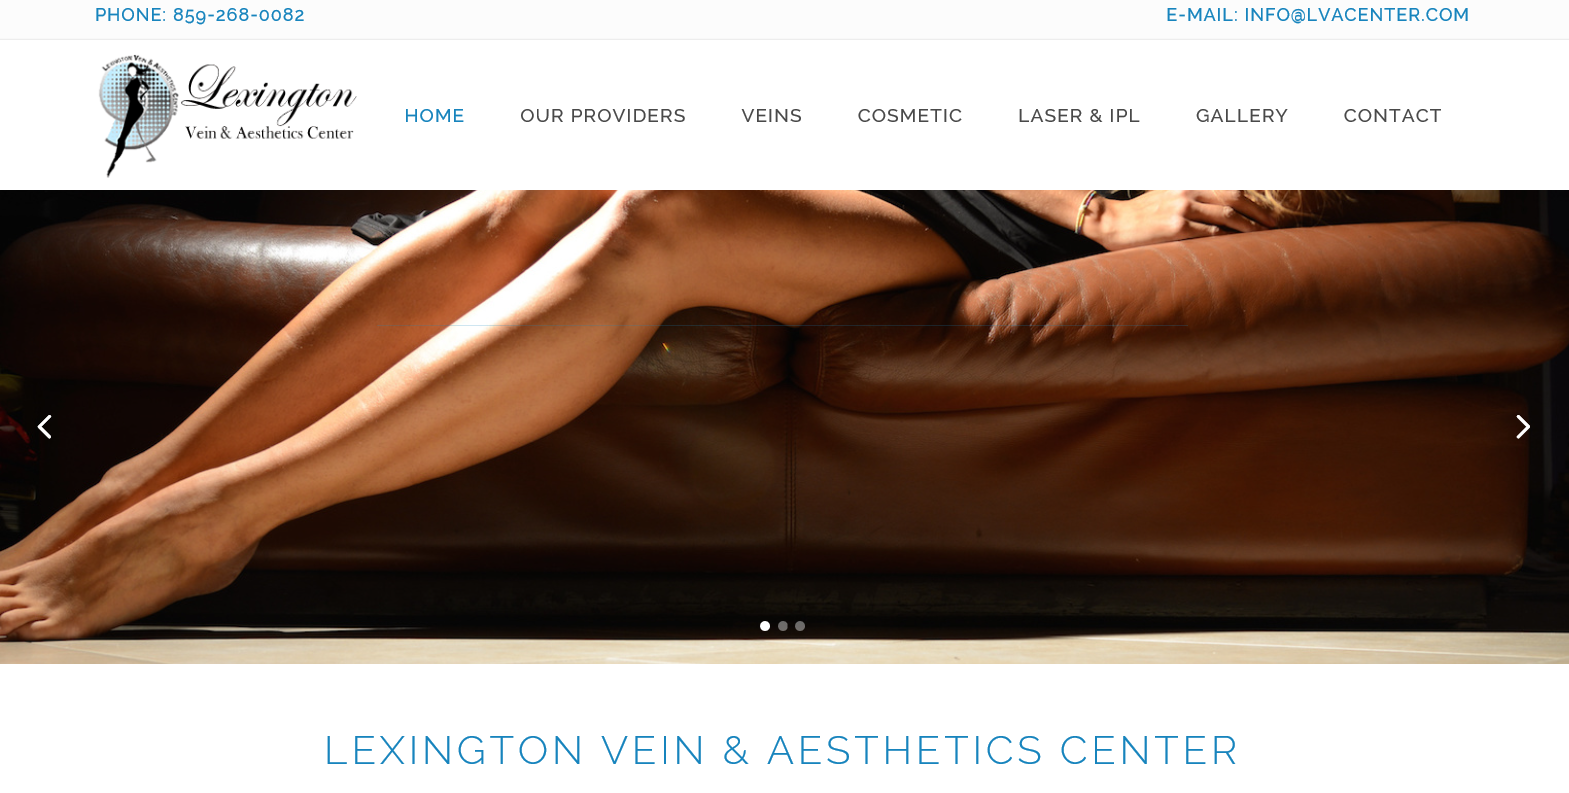 Lexington Vein and Aesthetics Center